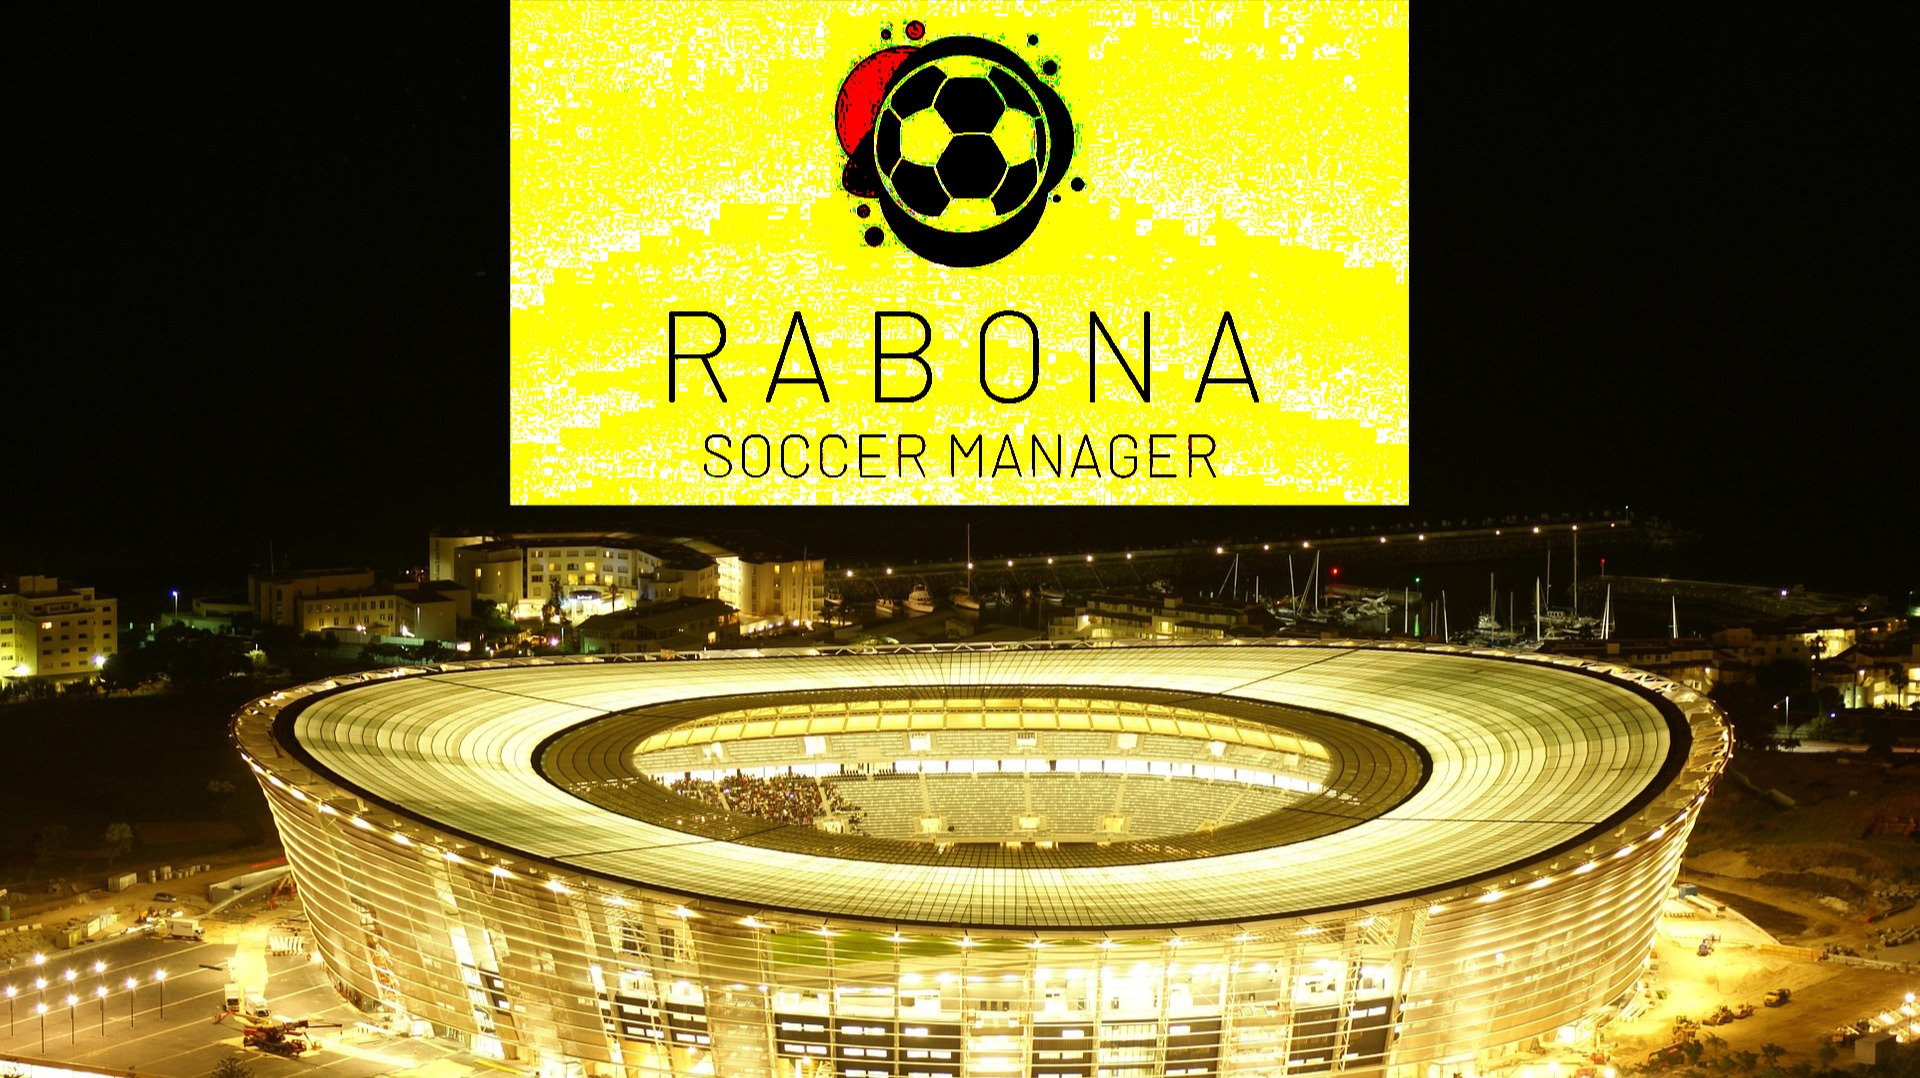 A new tokenized ecosystem is coming to life around Rabona game on Hive blockchain